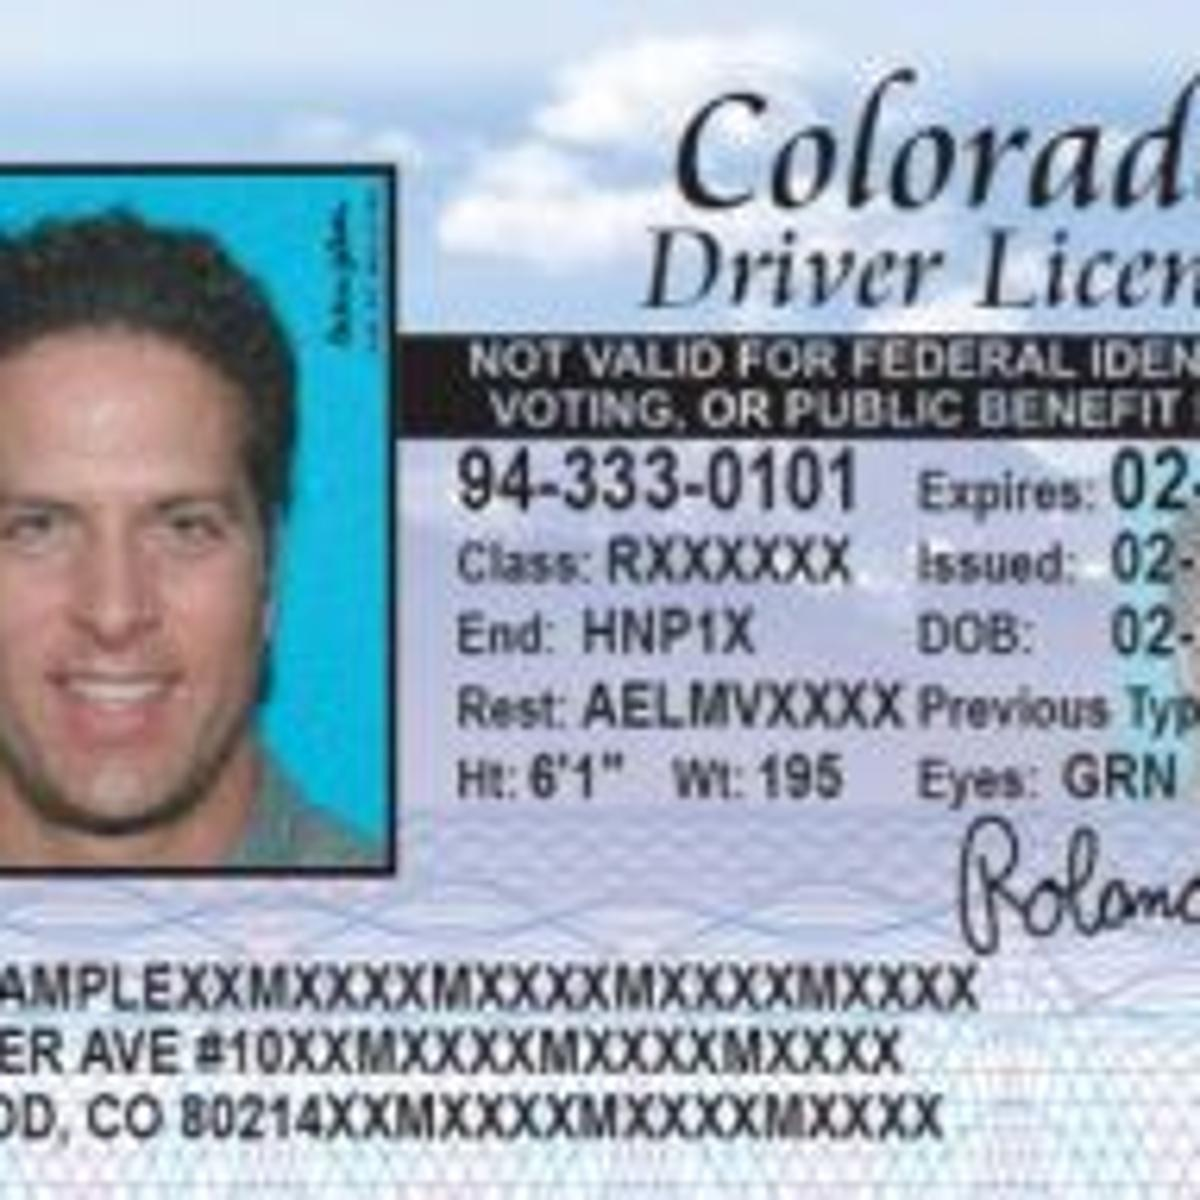 driving license test colorado springs